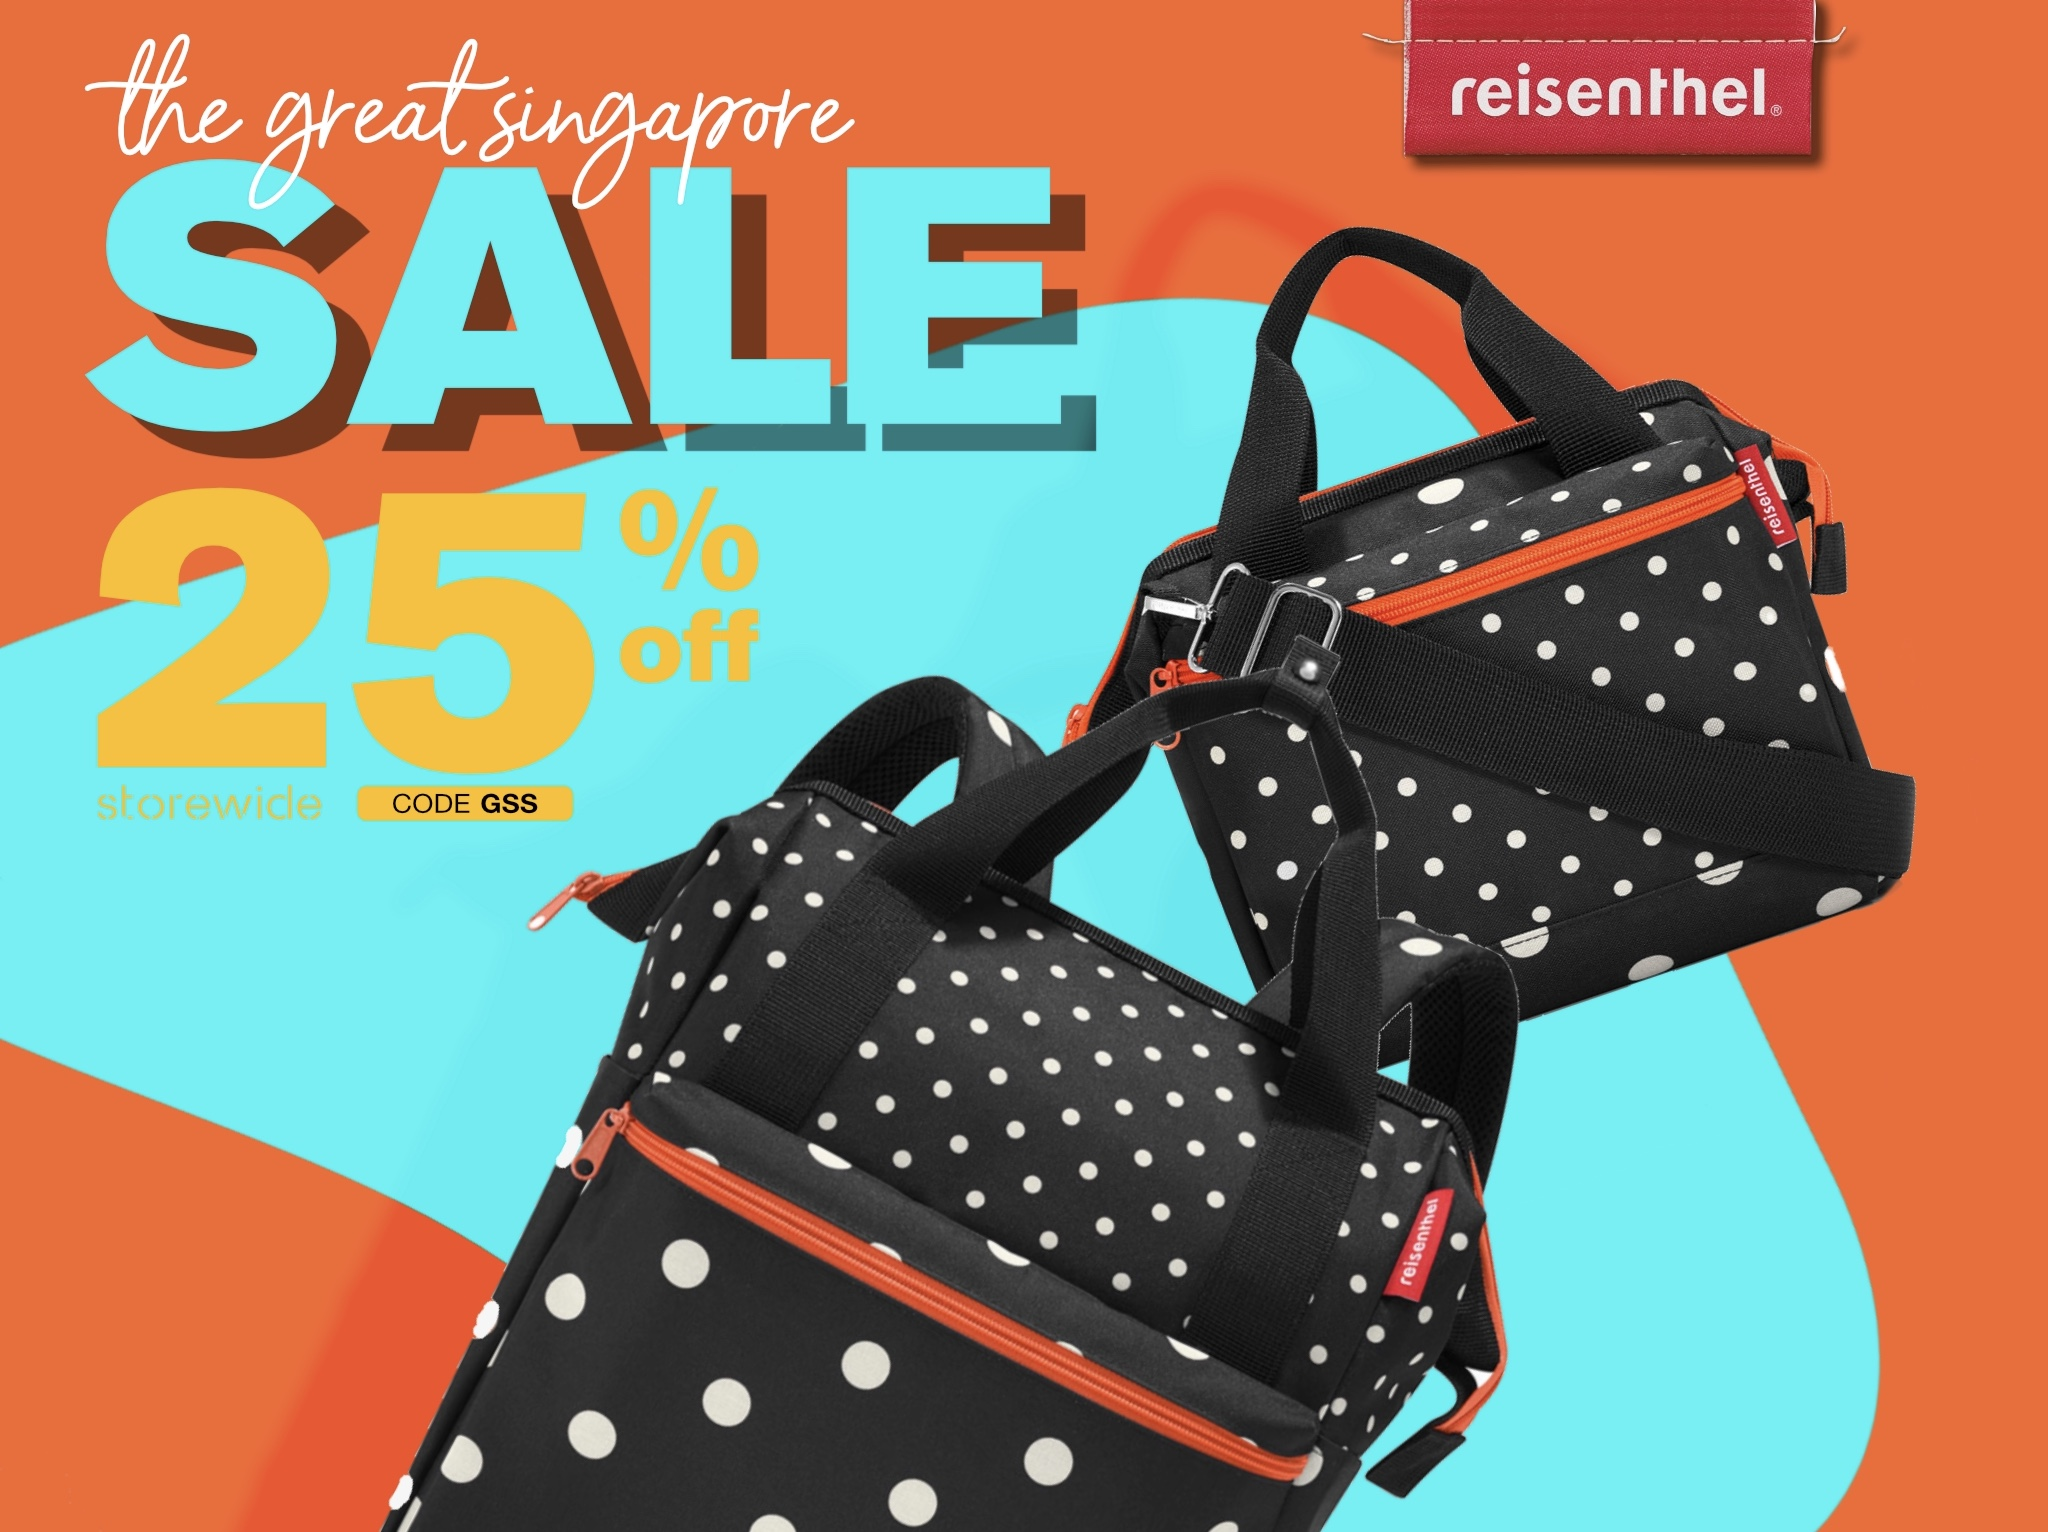 Rock SG Reisenthel Singapore Great Singapore Sale 2020 Mixed Dots